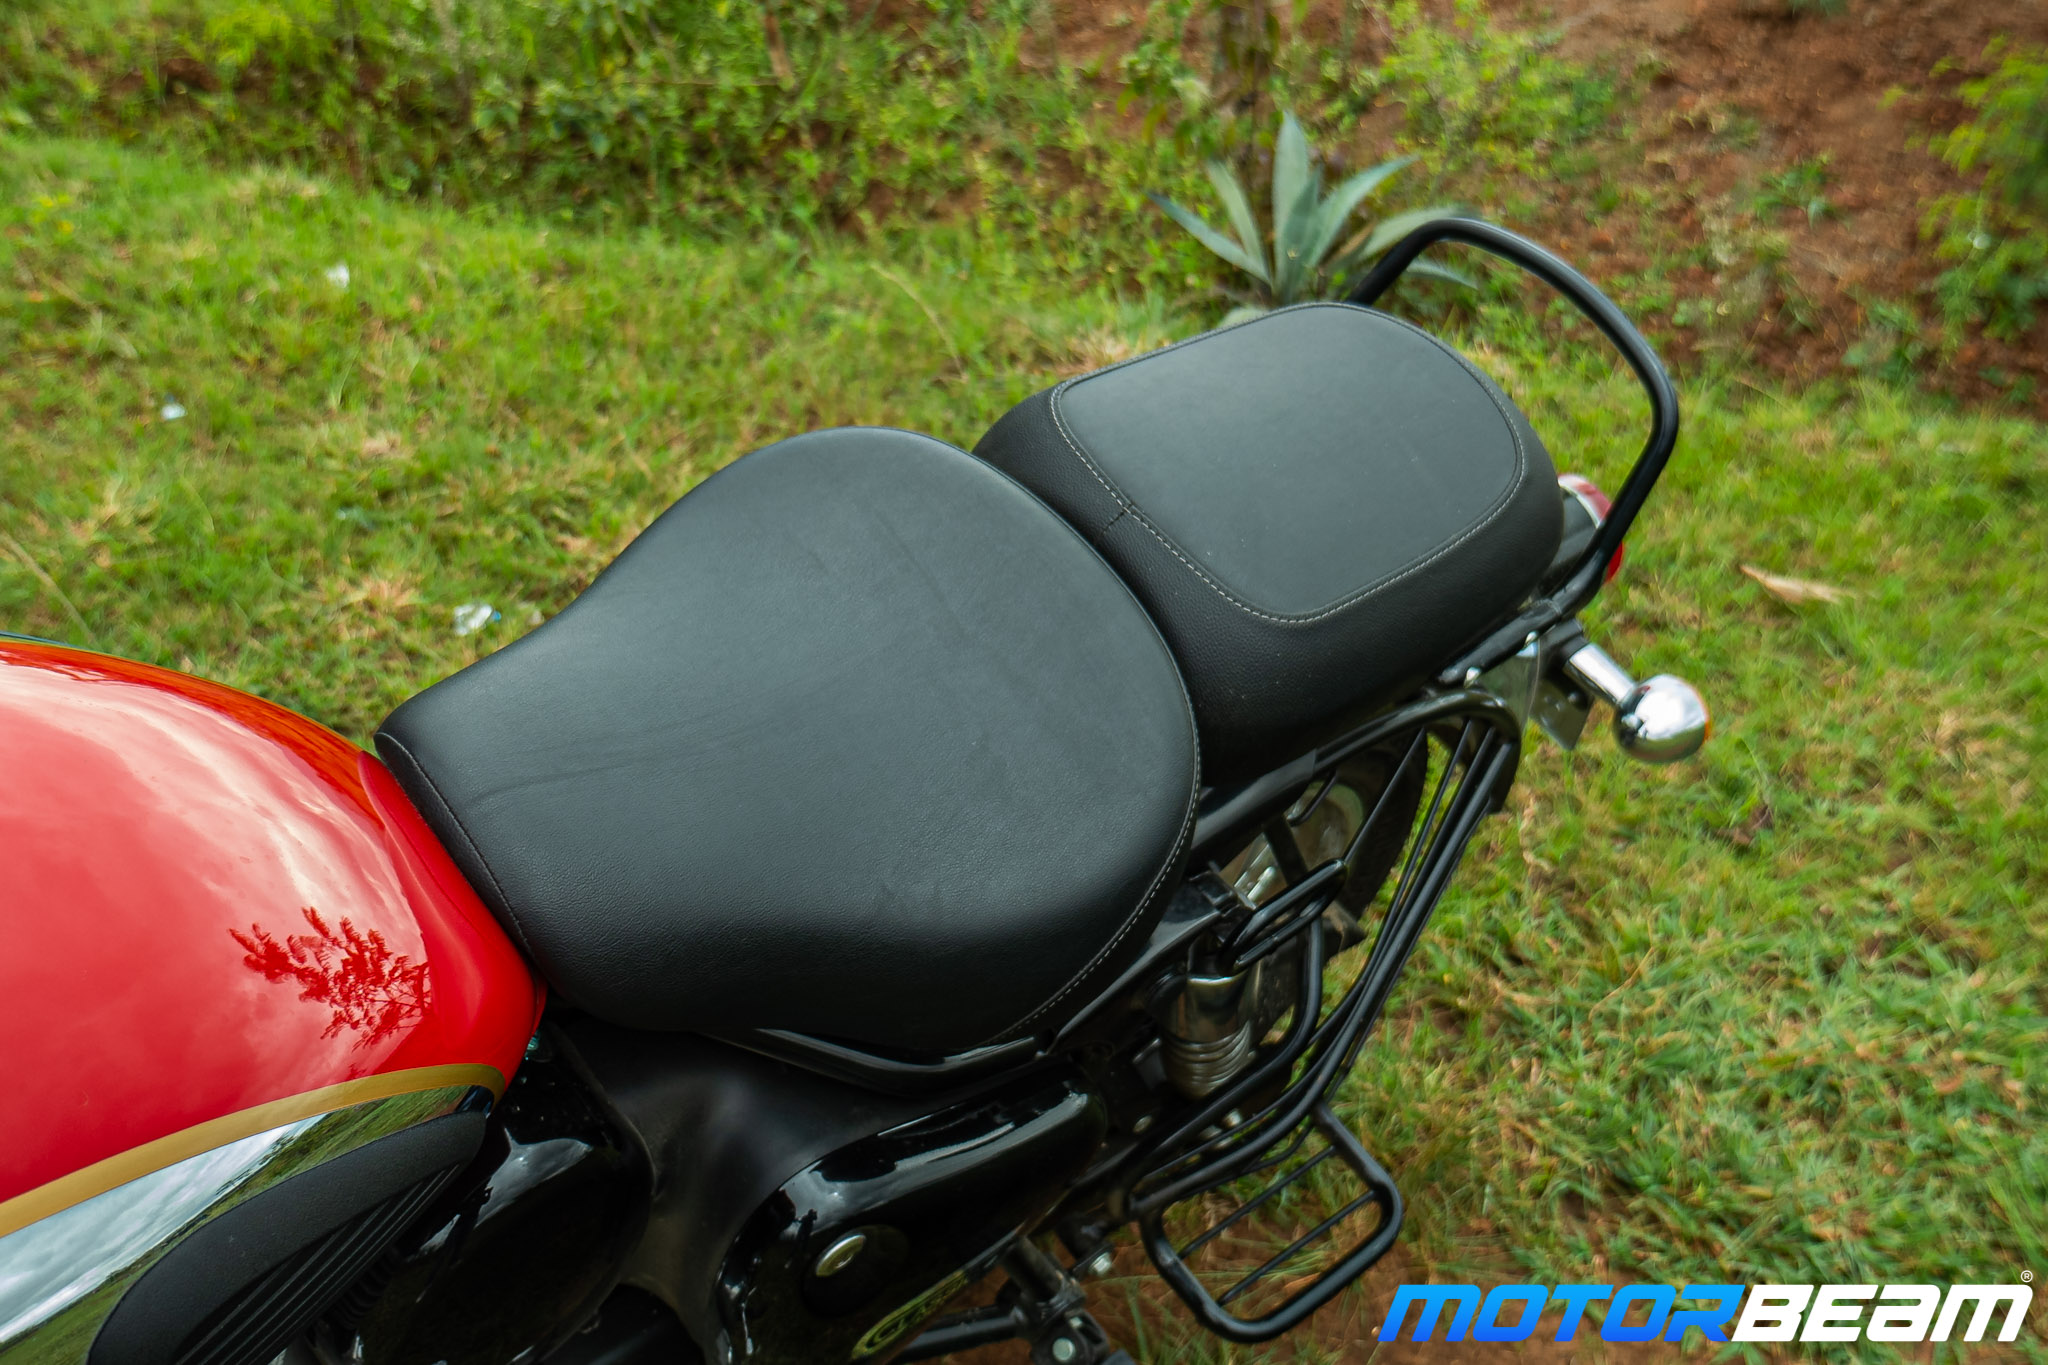 2022 Royal Enfield Classic 350 Review 6